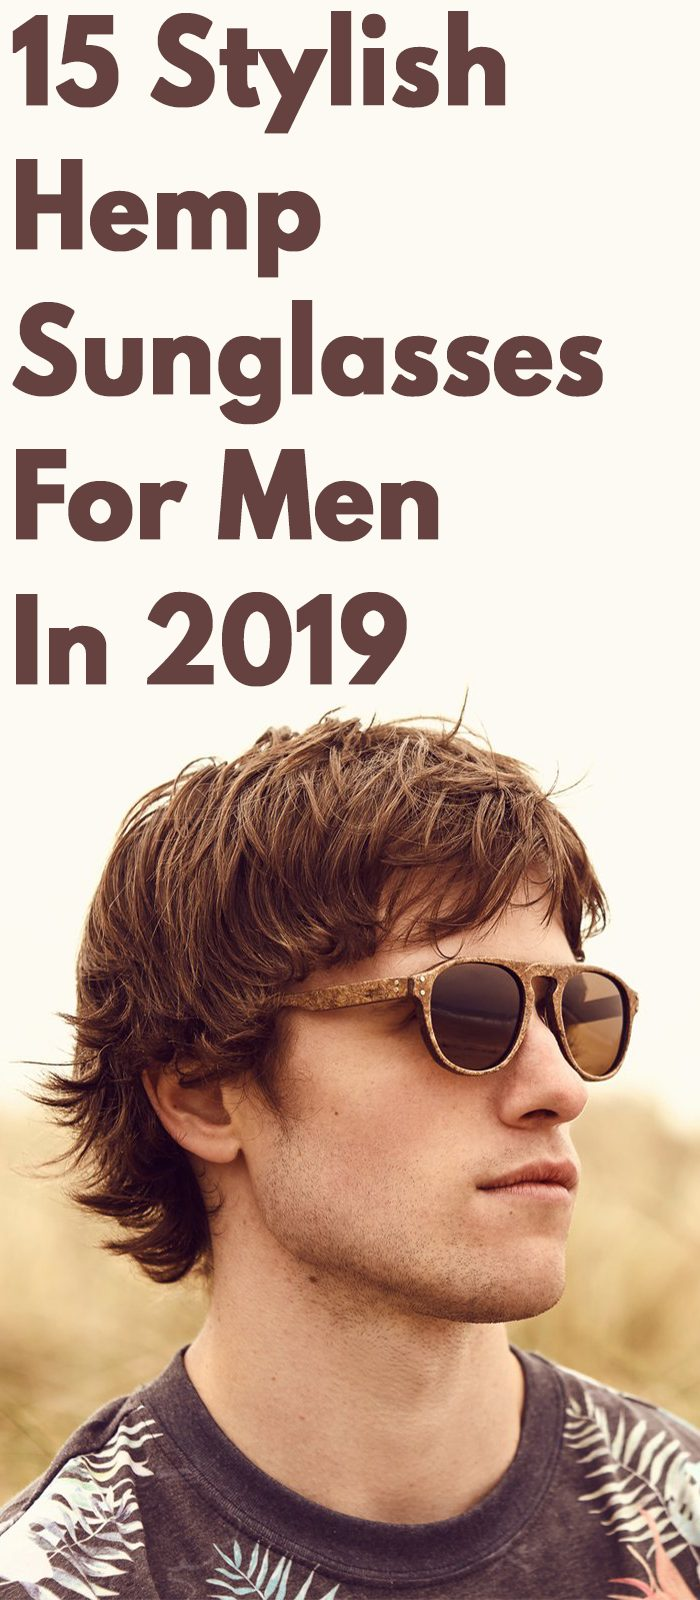 15 Stylish Hemp Sunglasses For Men In 2019